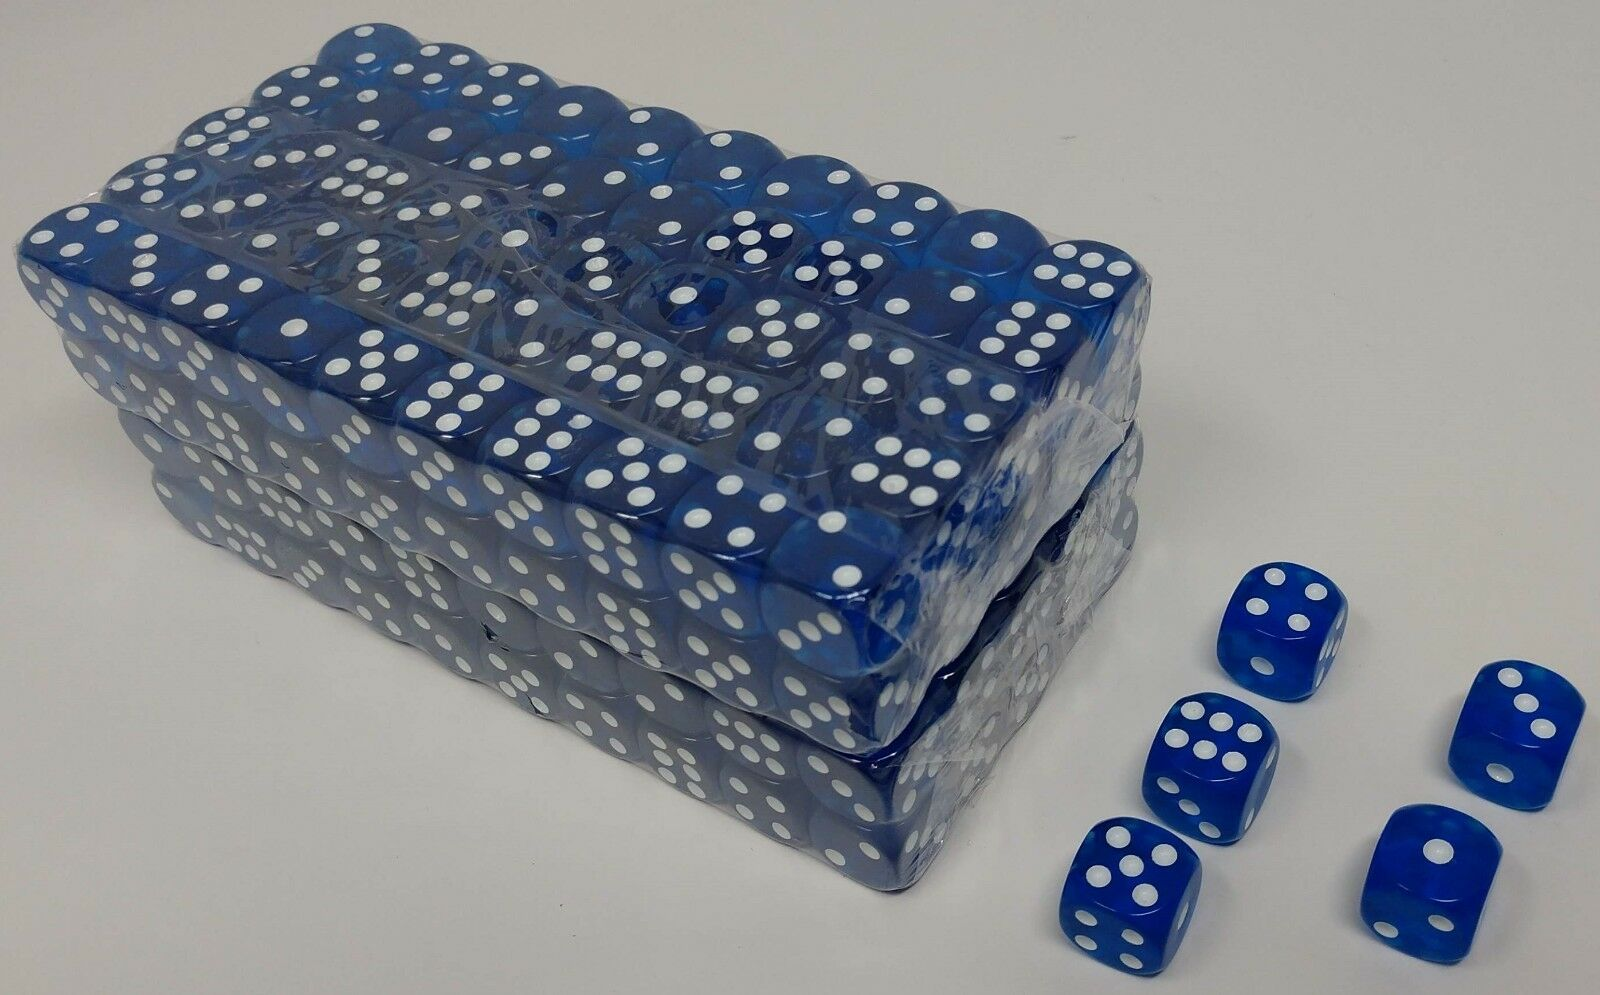 or Green Gaming Dice in Bulk with Rounded Corners Blue DA VINCI 16mm 6 Sided Translucent Red